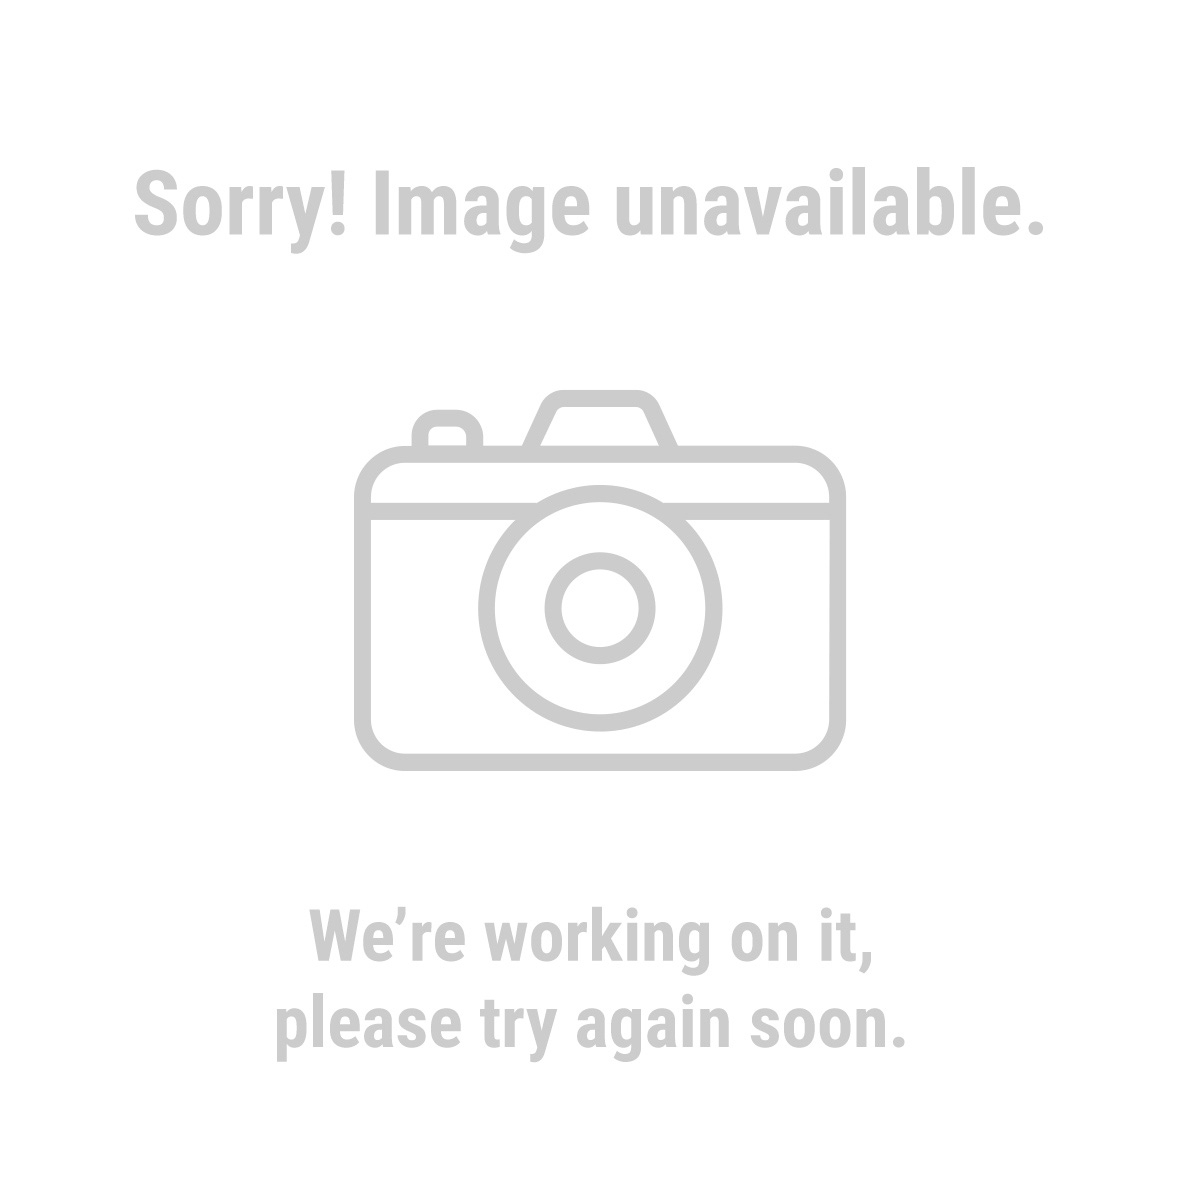 Safety Vest Harbor Freight